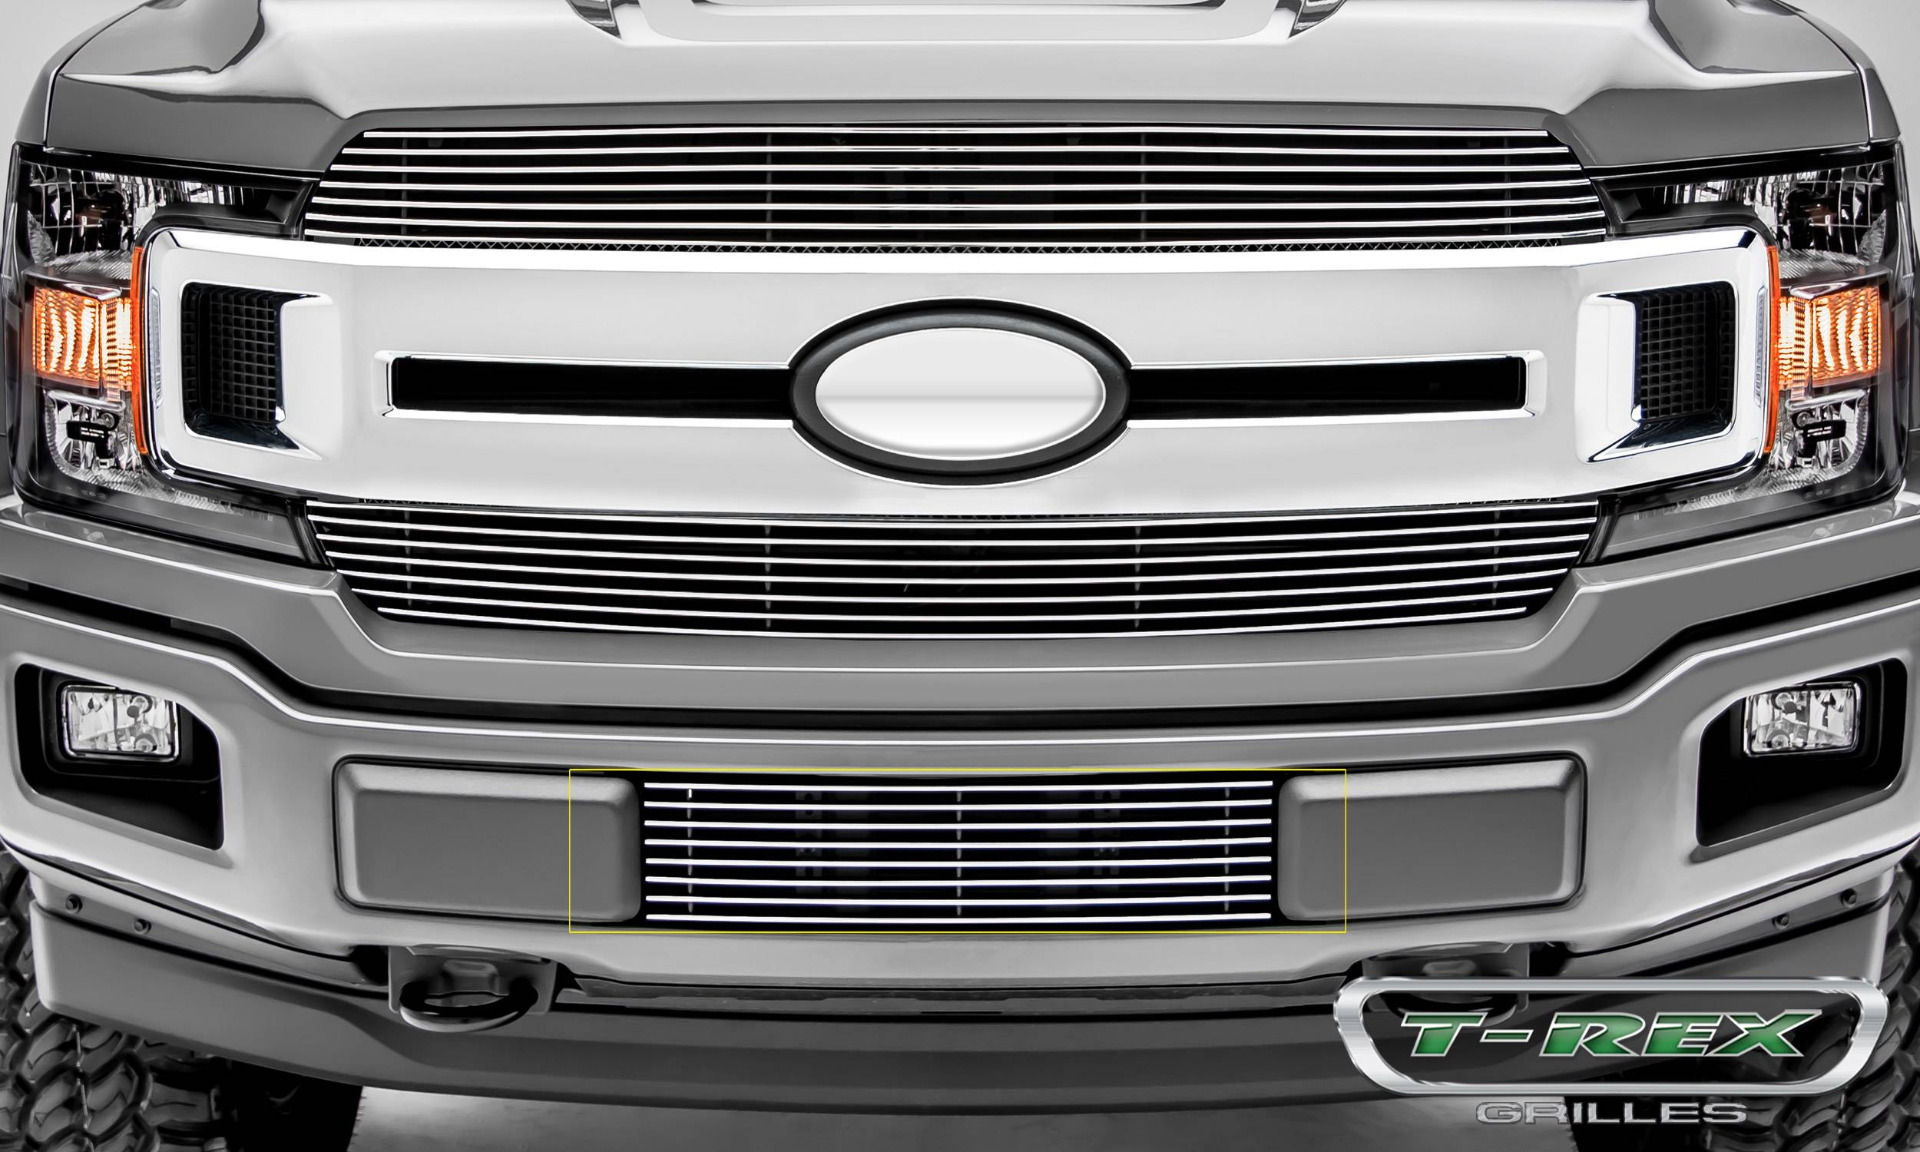 F150 TREX Grille and Accessories Catalog - Ford F150 - F150 Shop